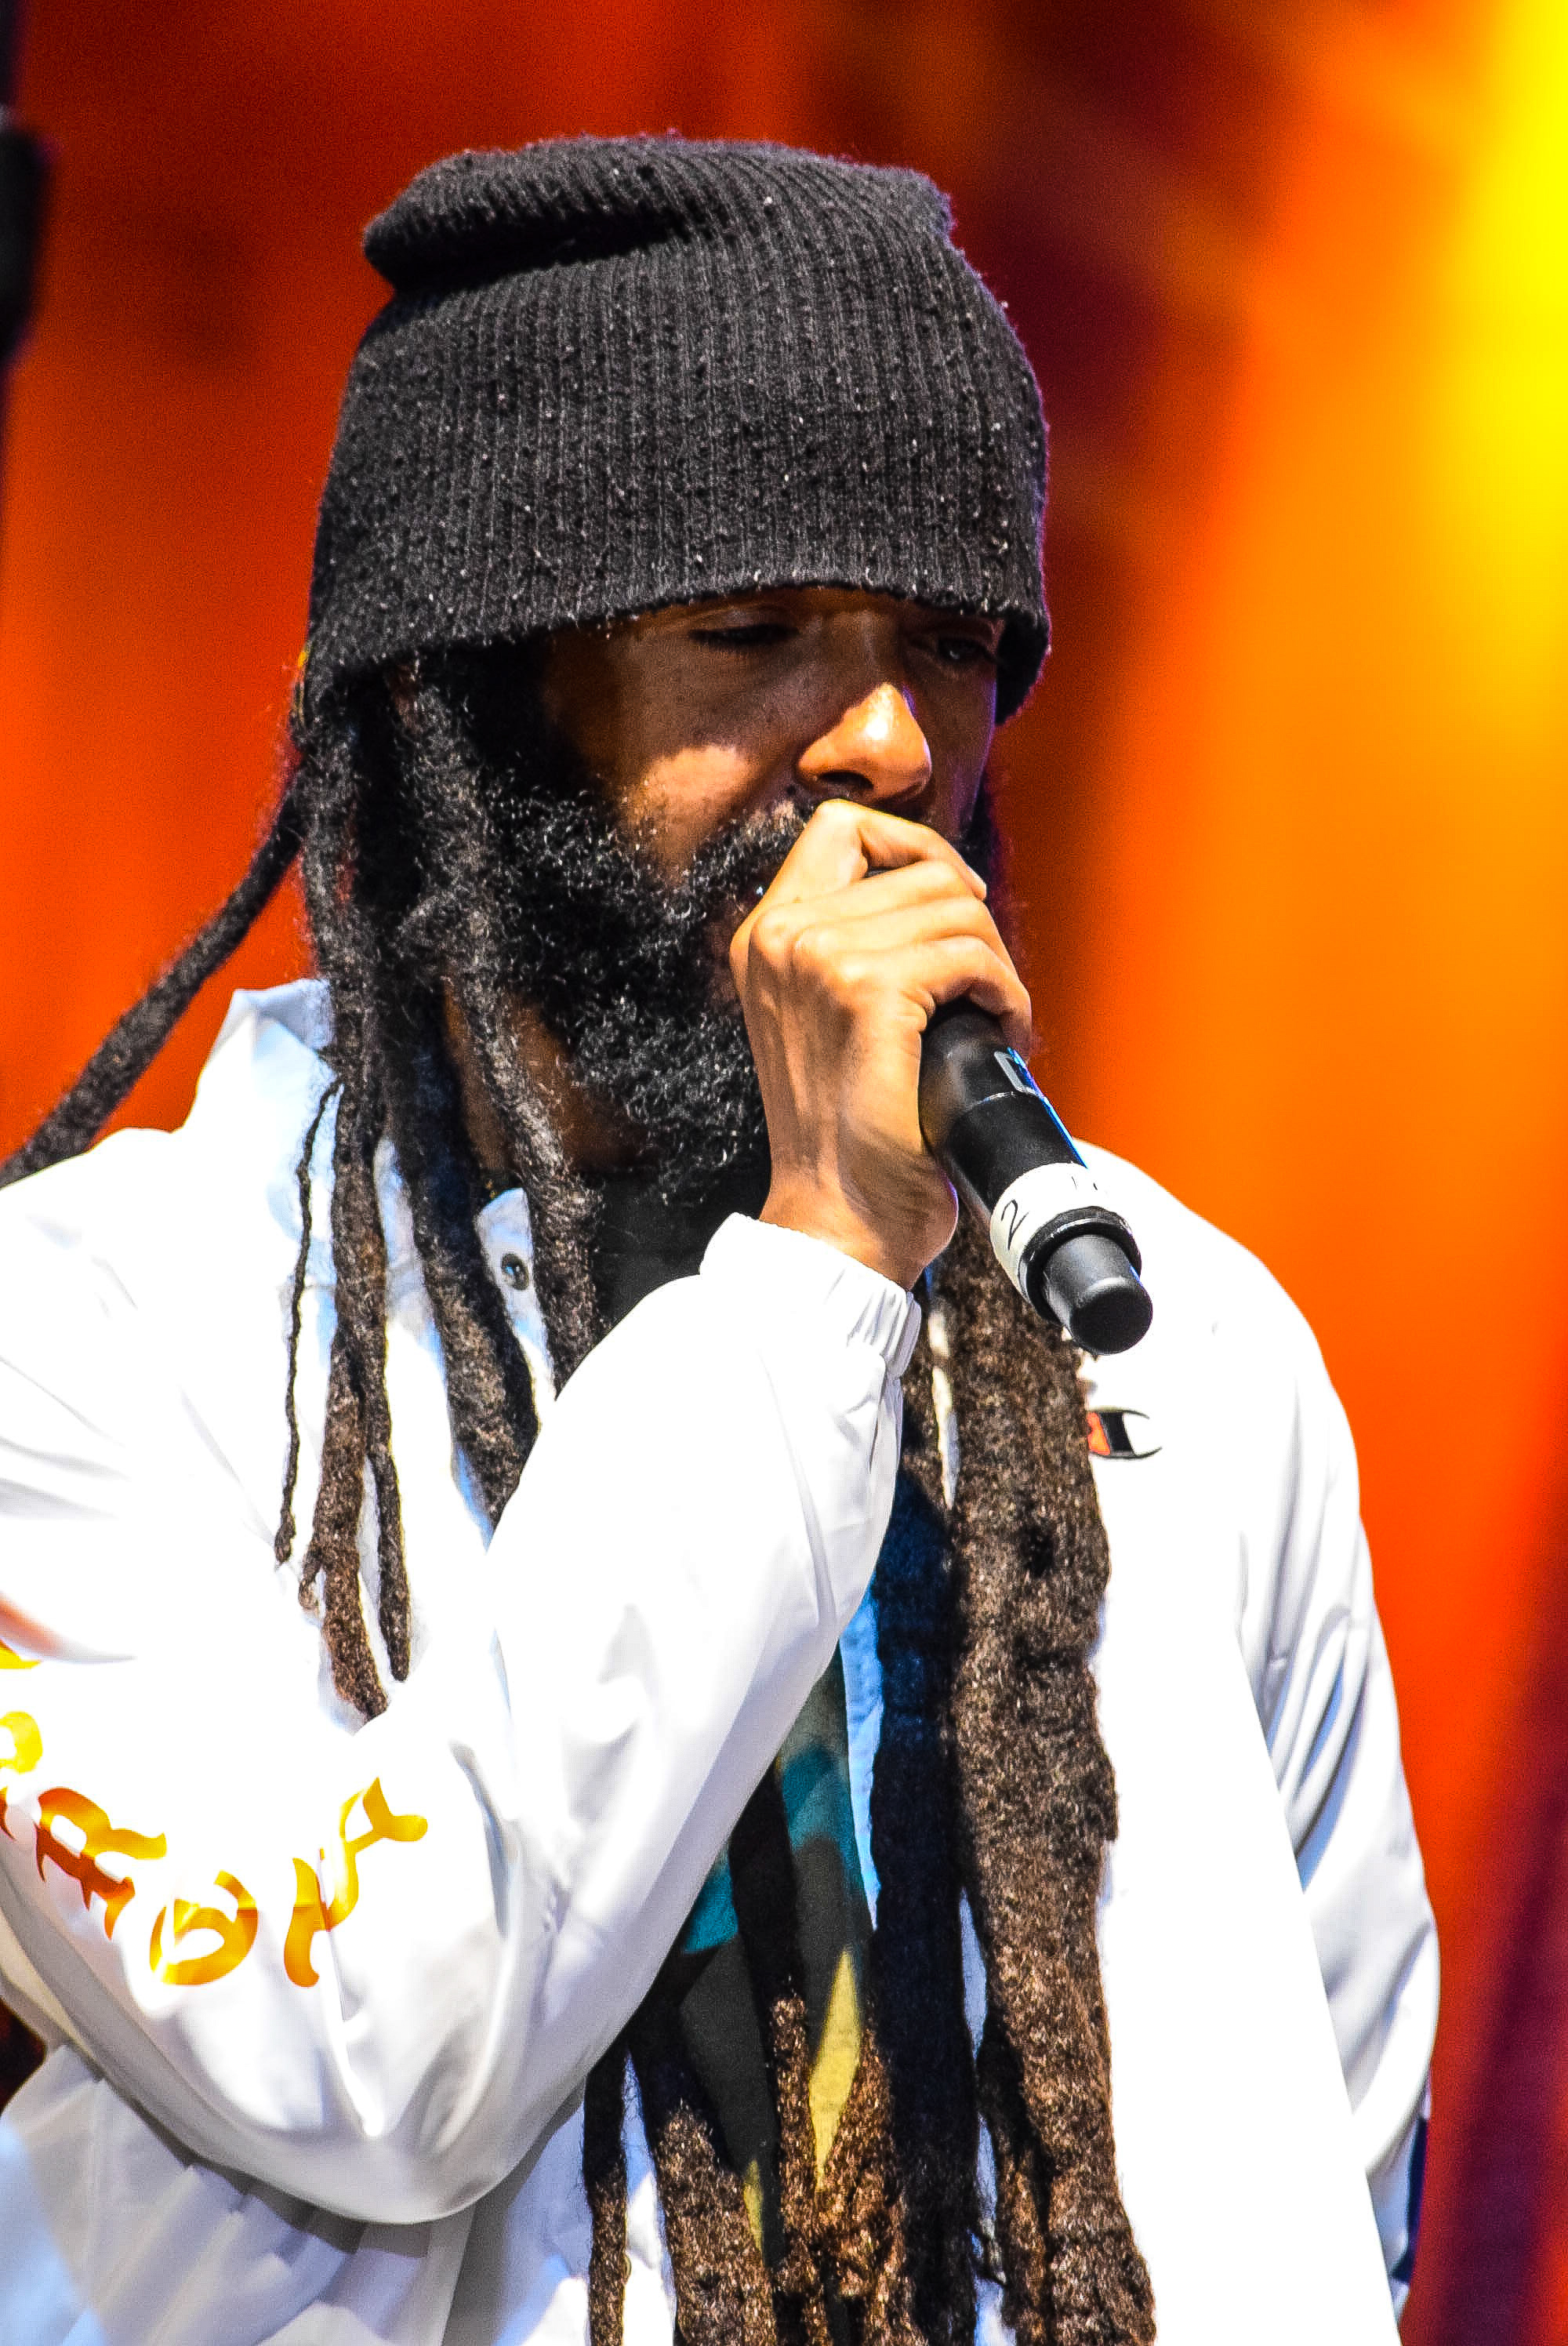 Protoje's No Guarantee featuring Chronixx